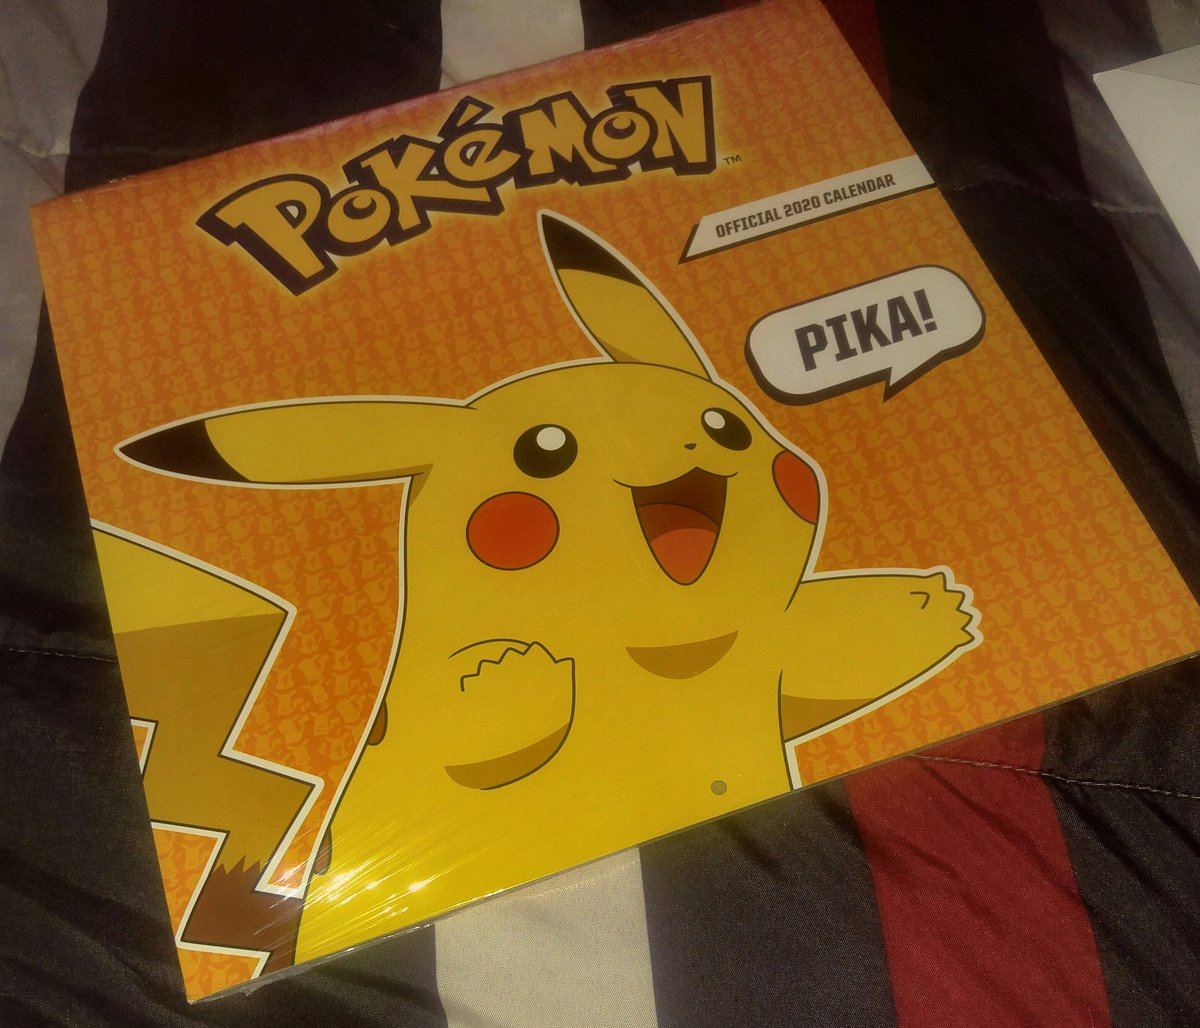 @TheVeronicaT By the way, I got me a brand new 2020 calendar with Pikachu on the front page!